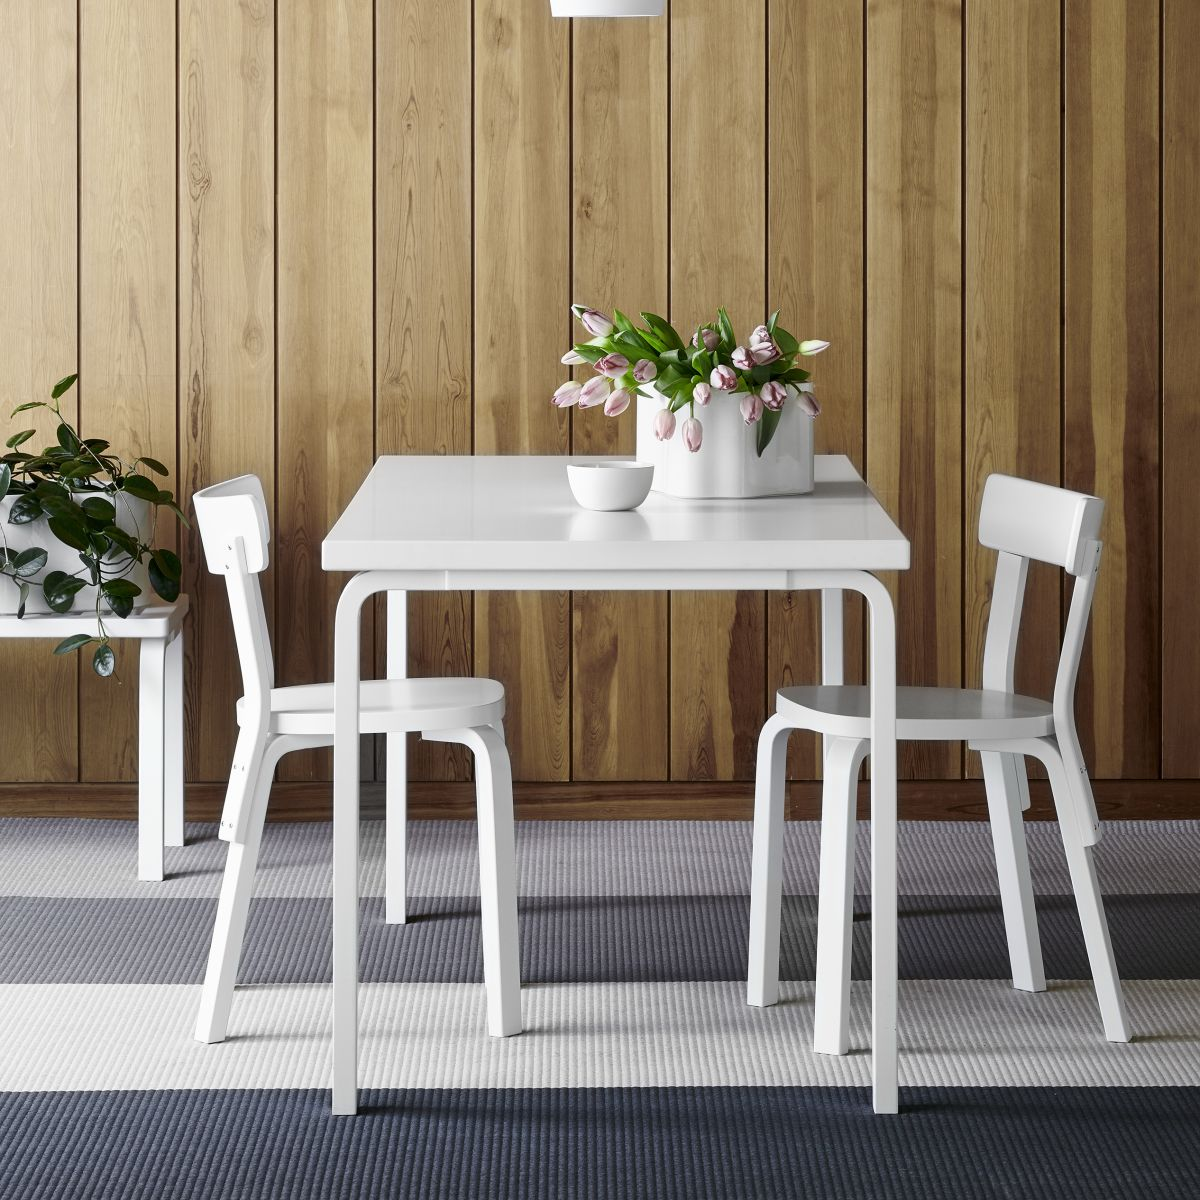 Chair_69_Aalto_Table_rectangular_82A_A440_white_lacquer_2